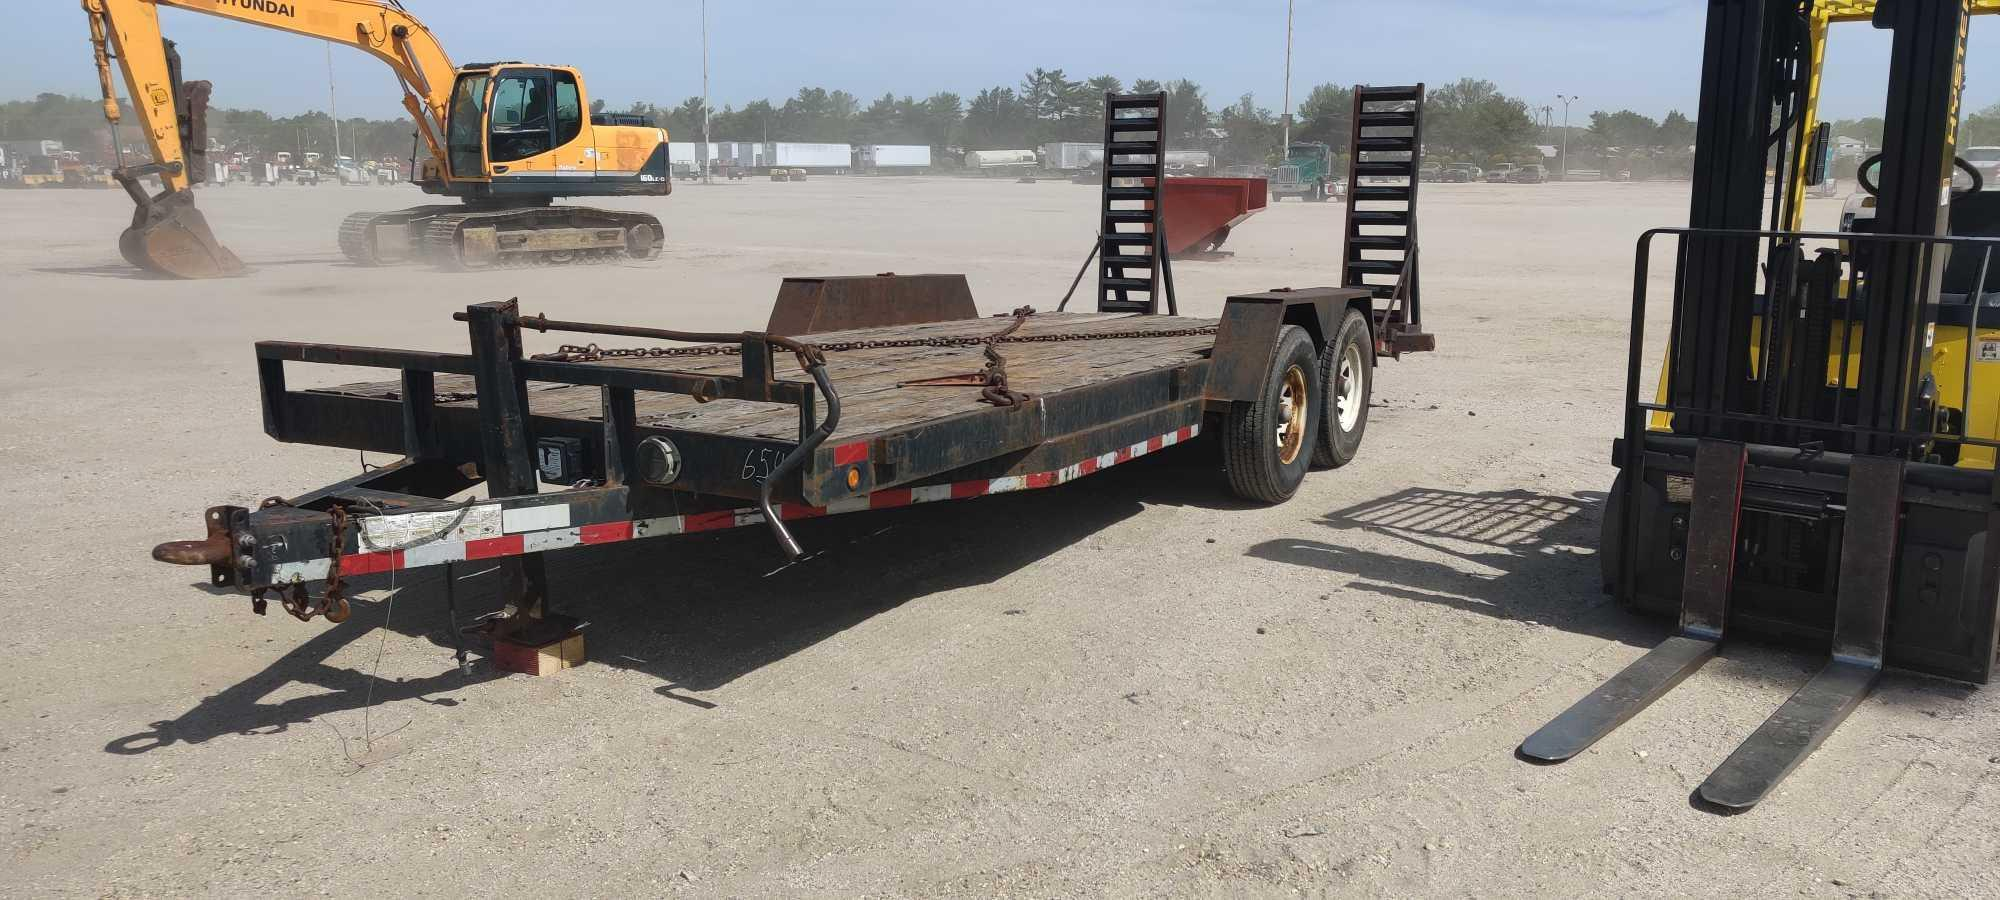 2005 LTD CH2 TAGALONG TRAILER VN:1001721 Equipped With